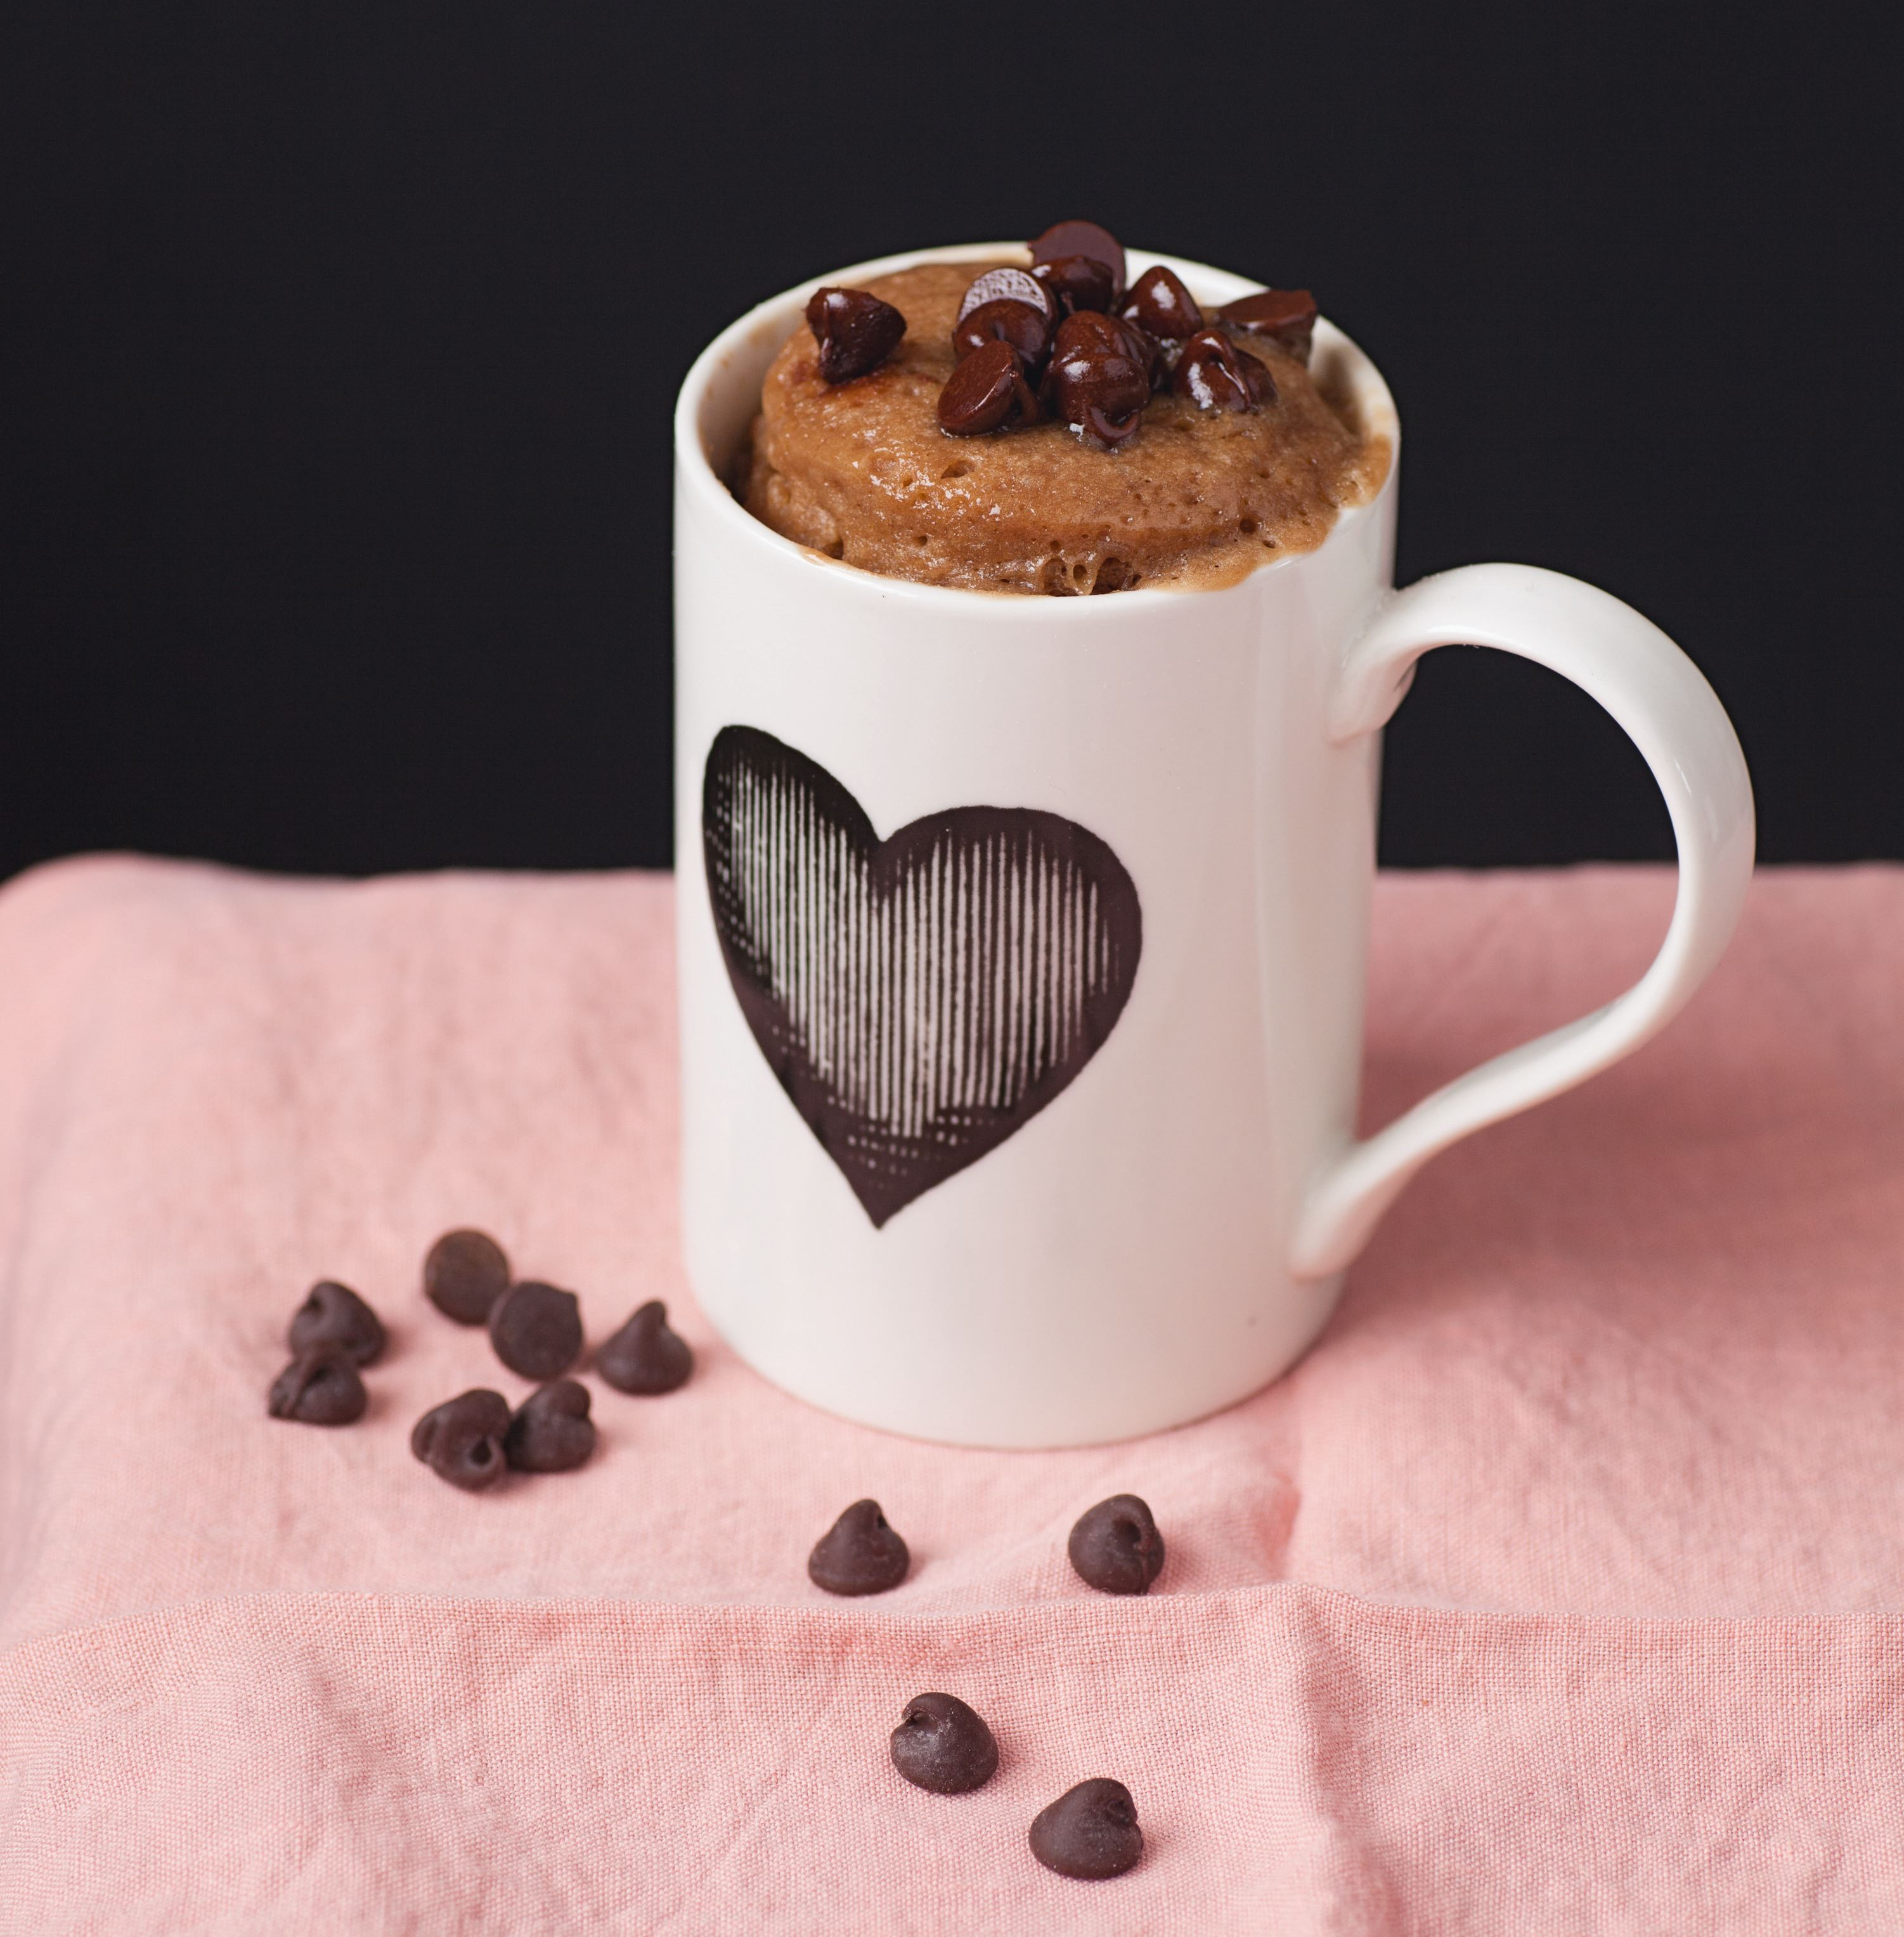 Milk chocolate mug cake with dark chocolate chips